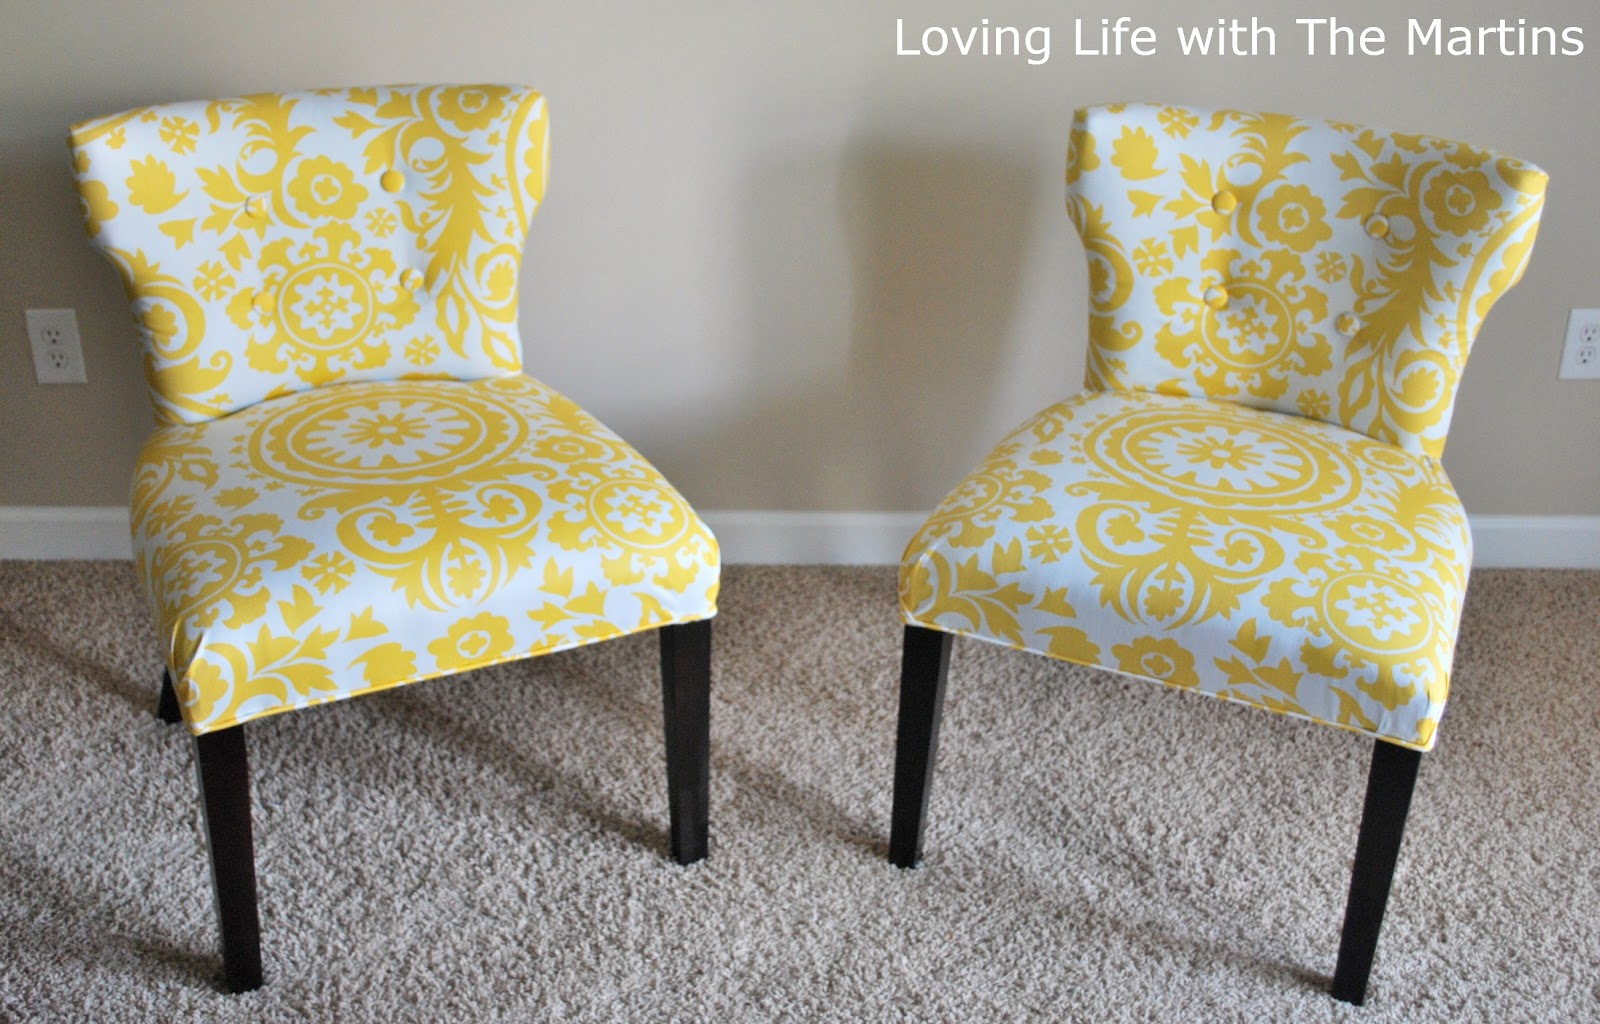 How To Recover Dining Room Chairs With Piping Chair Covers For Occasions Loving Life The Martins Reupholster A